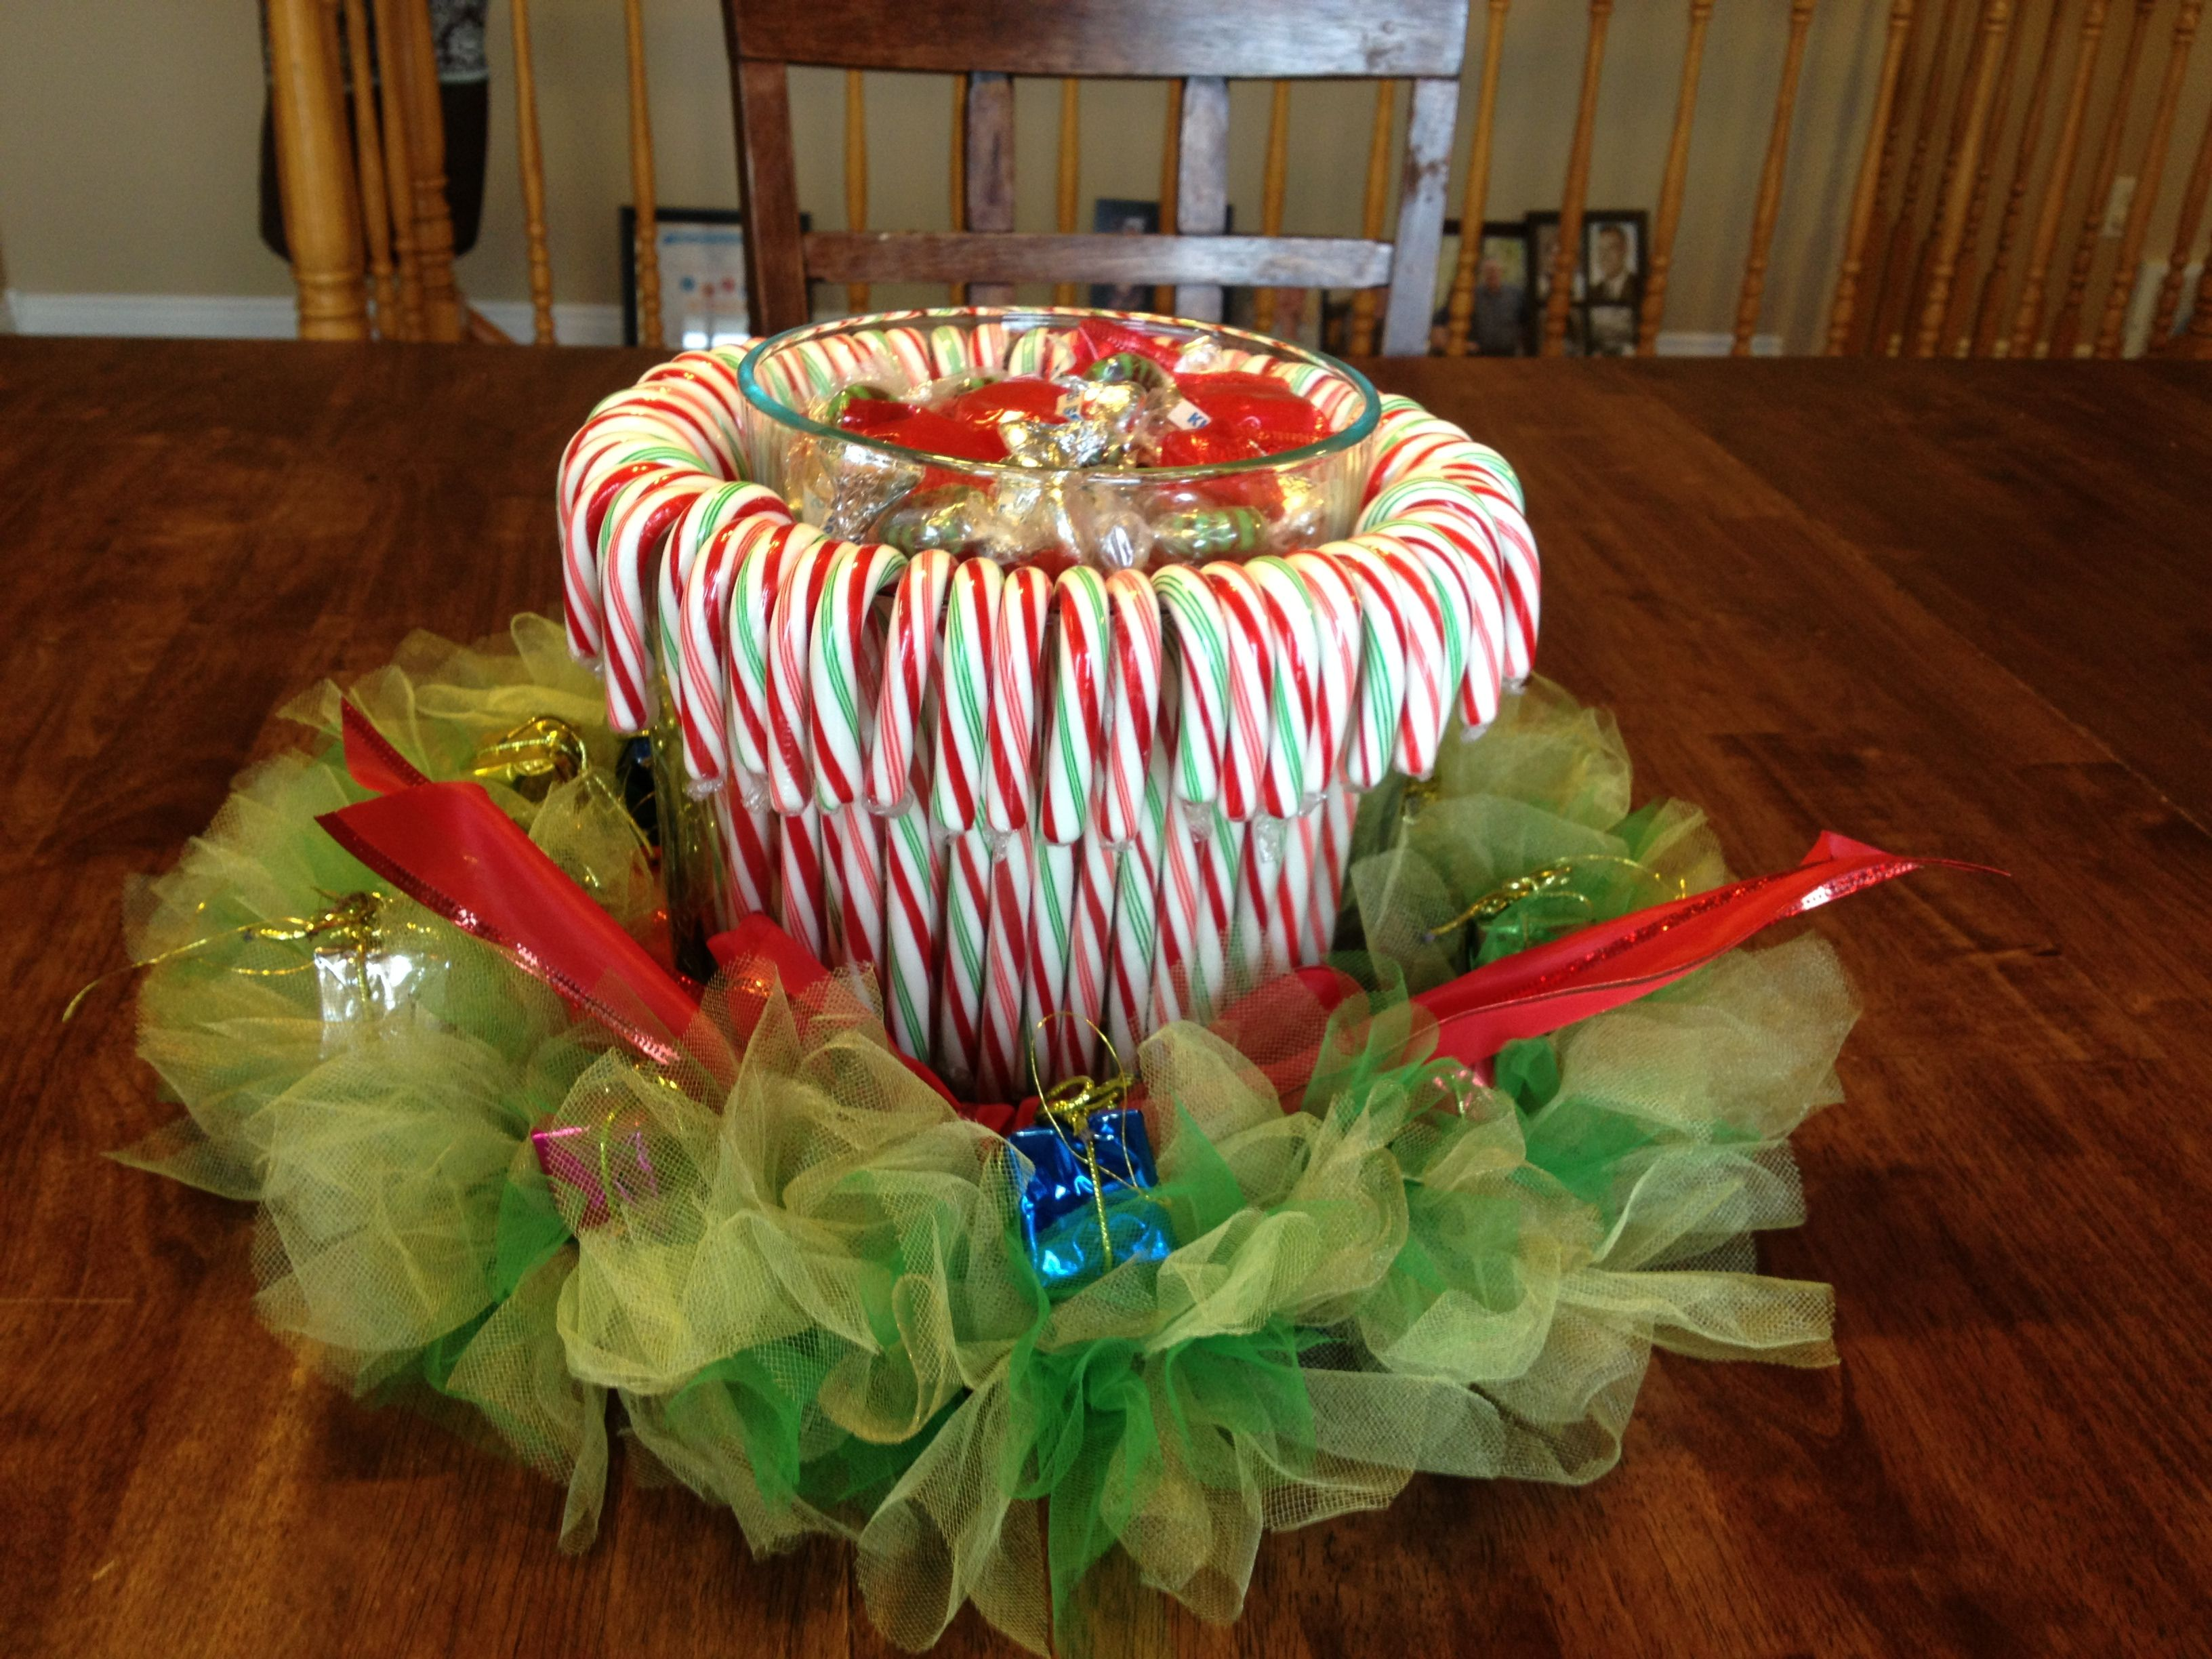 A fun and festive centerpiece with candy canes around the trifle